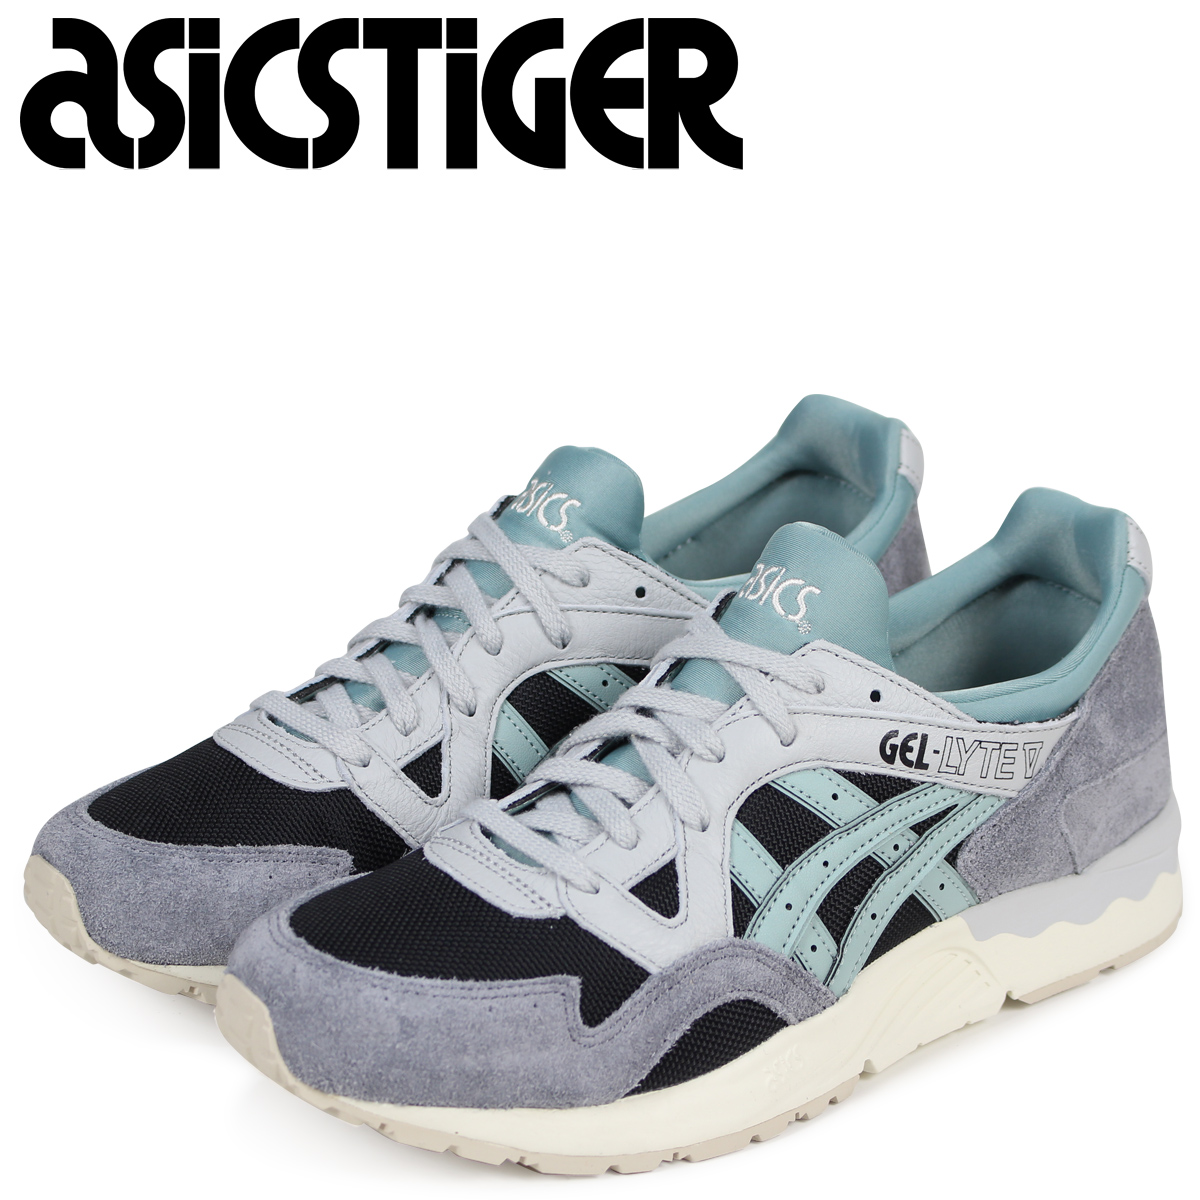 brand new 80cfe aa607 asics Tiger gel light 5 ASICS tiger sneakers GEL-LYTE V H805L-9046 men blue